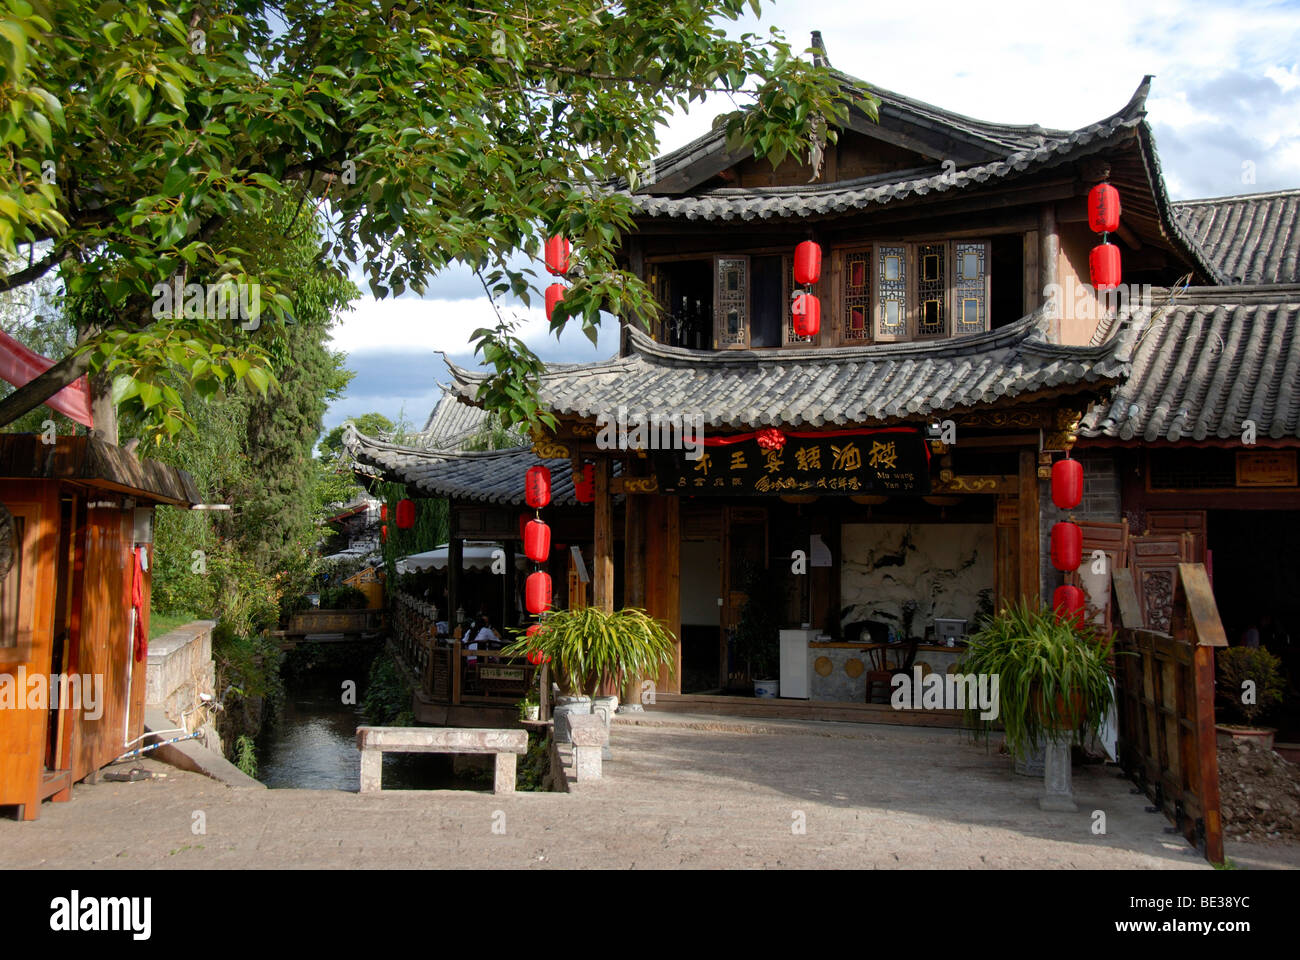 Old house with red lanterns, old town of Lijiang, UNESCO World Heritage Site, Yunnan Province, People's Republic - Stock Image